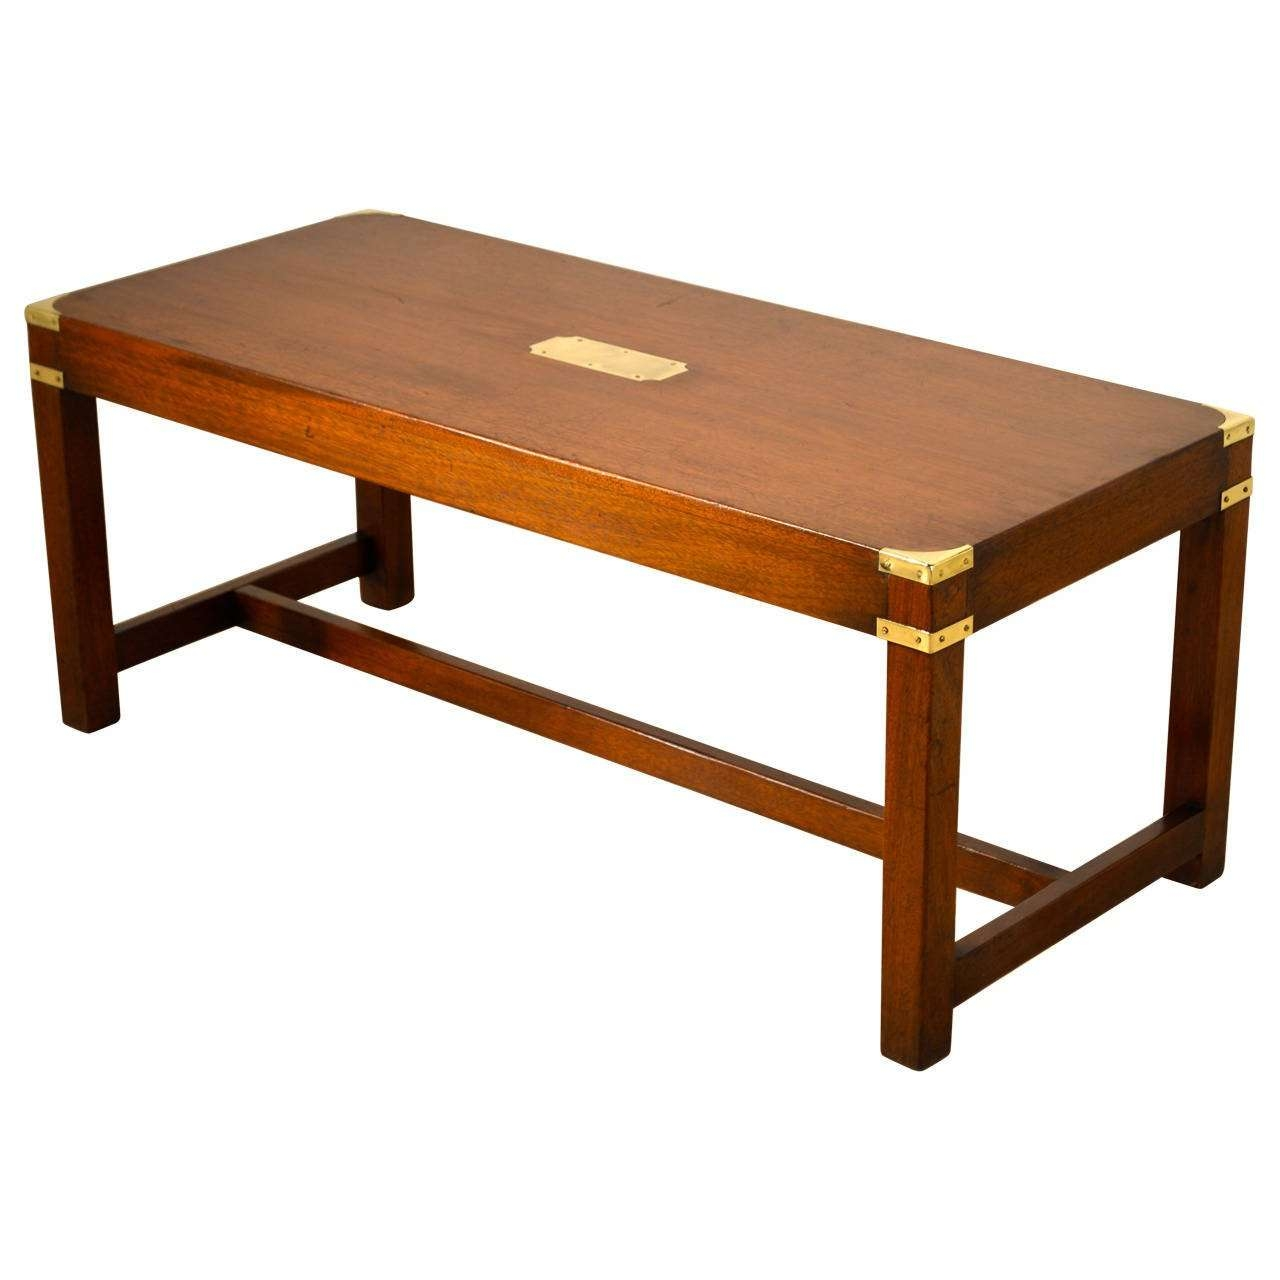 English Campaign Coffee Table, Circa 1940 At 1Stdibs Inside Best And Newest Campaign Coffee Tables (Gallery 1 of 20)